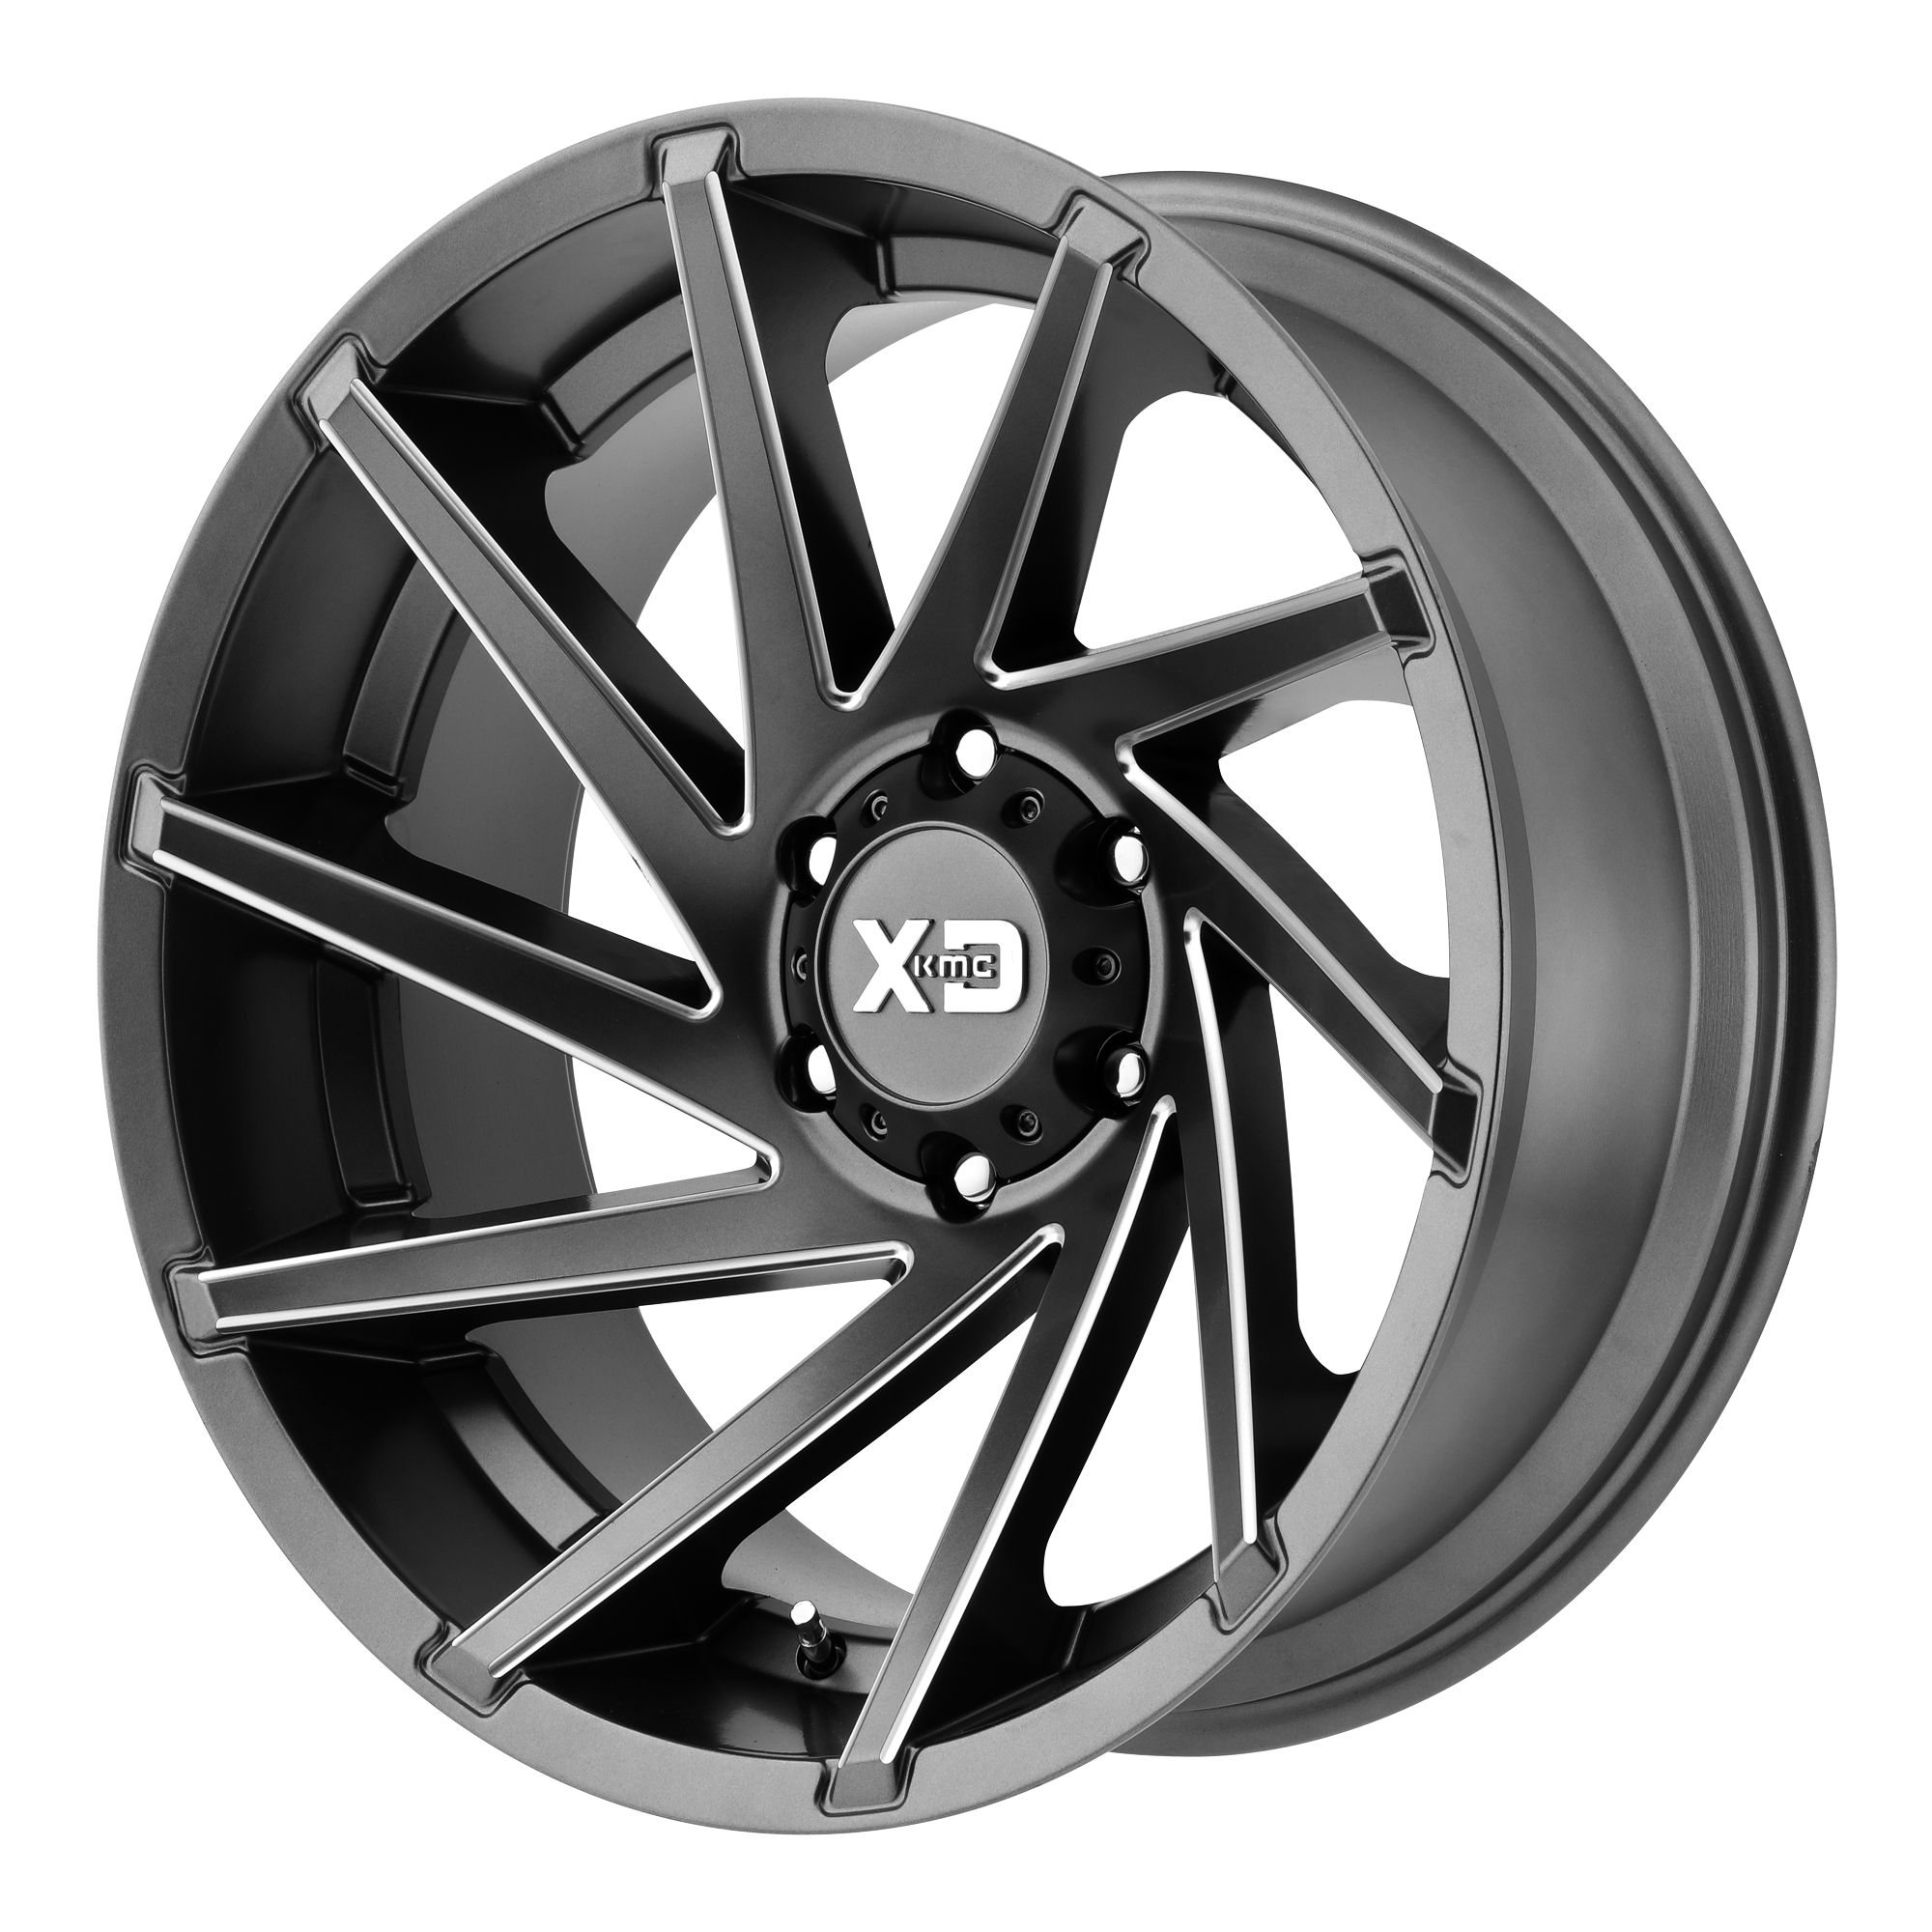 XD Series XD834 Wheels